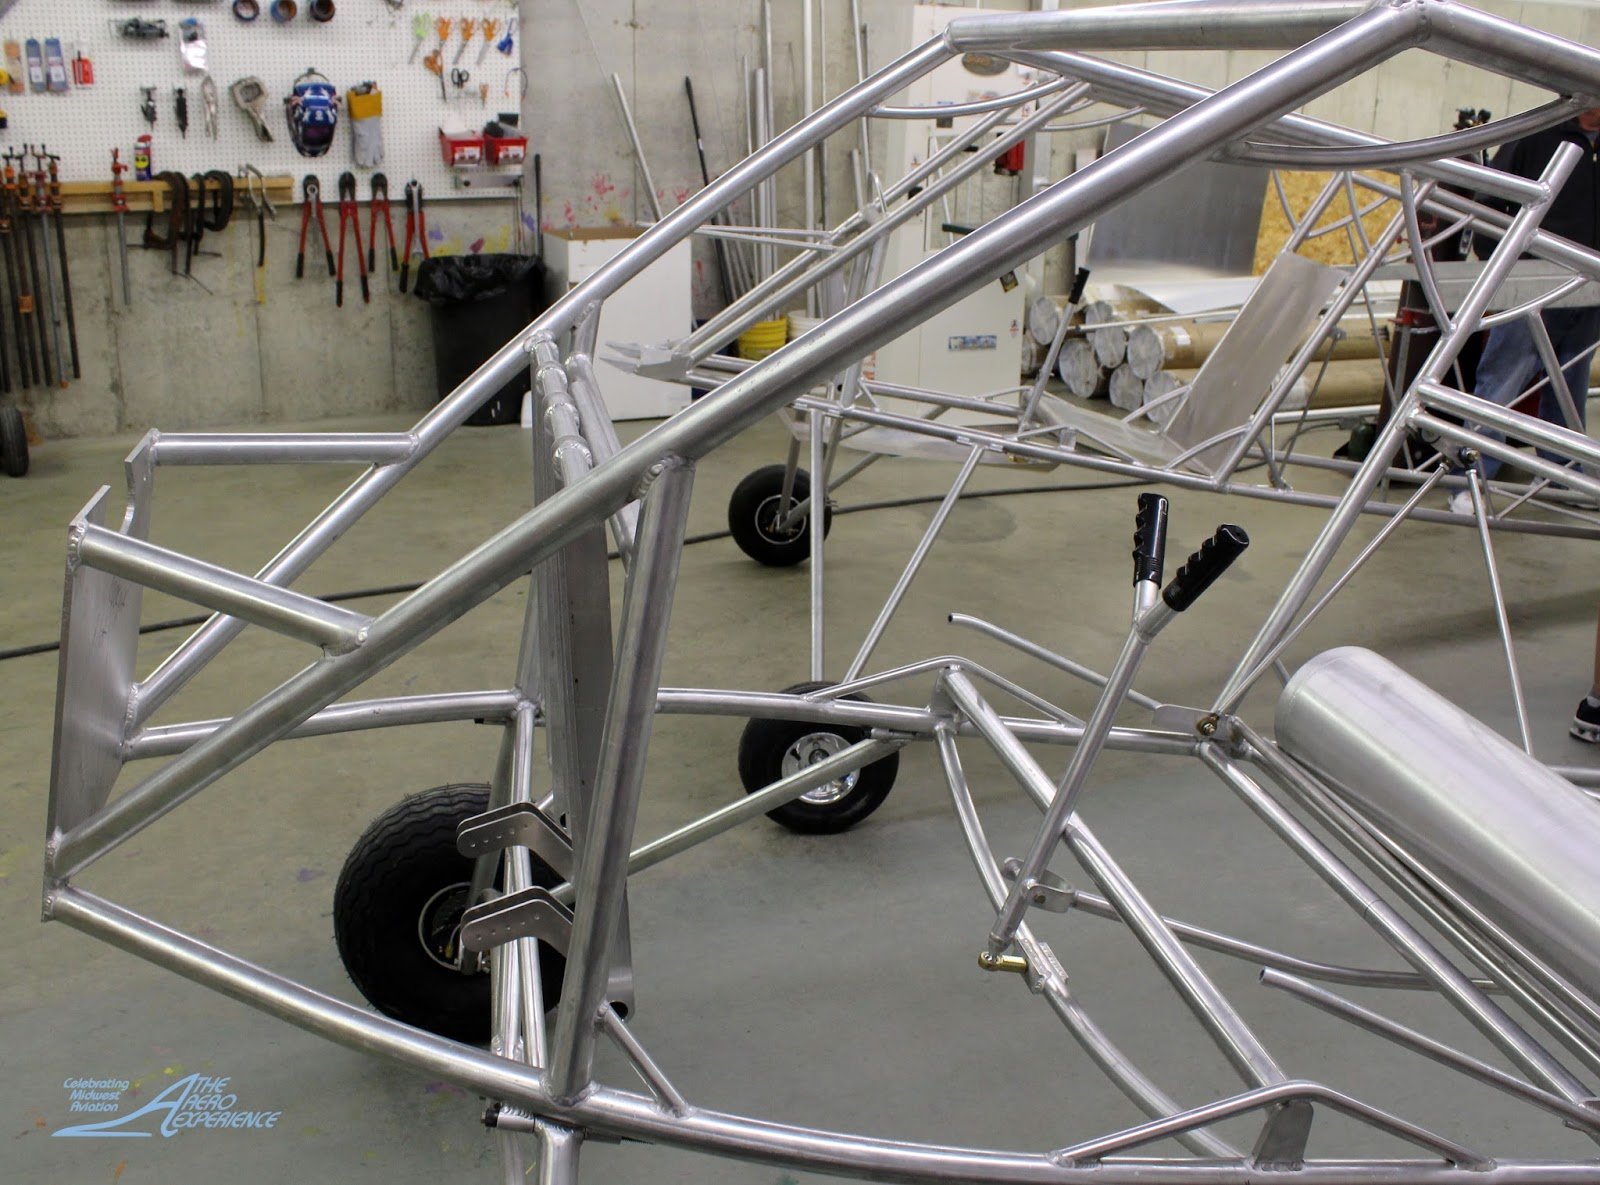 The Aero Experience: Midwest Aviation Family Business